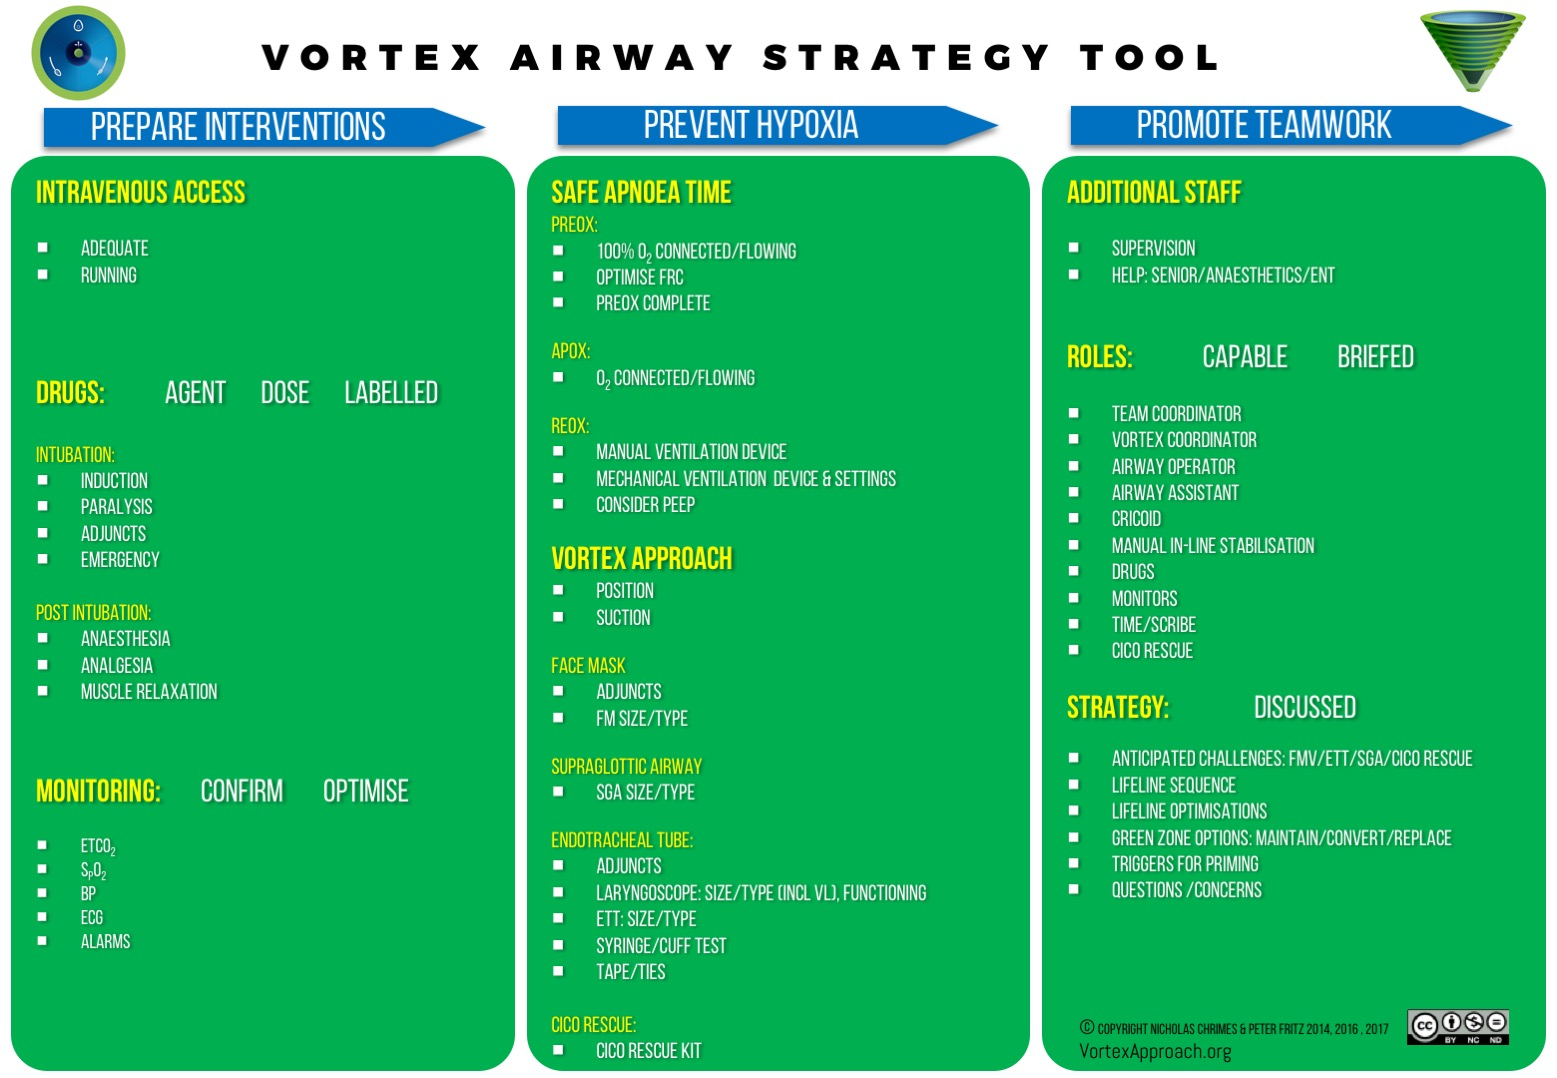 The Vortex Airway Strategy Tool